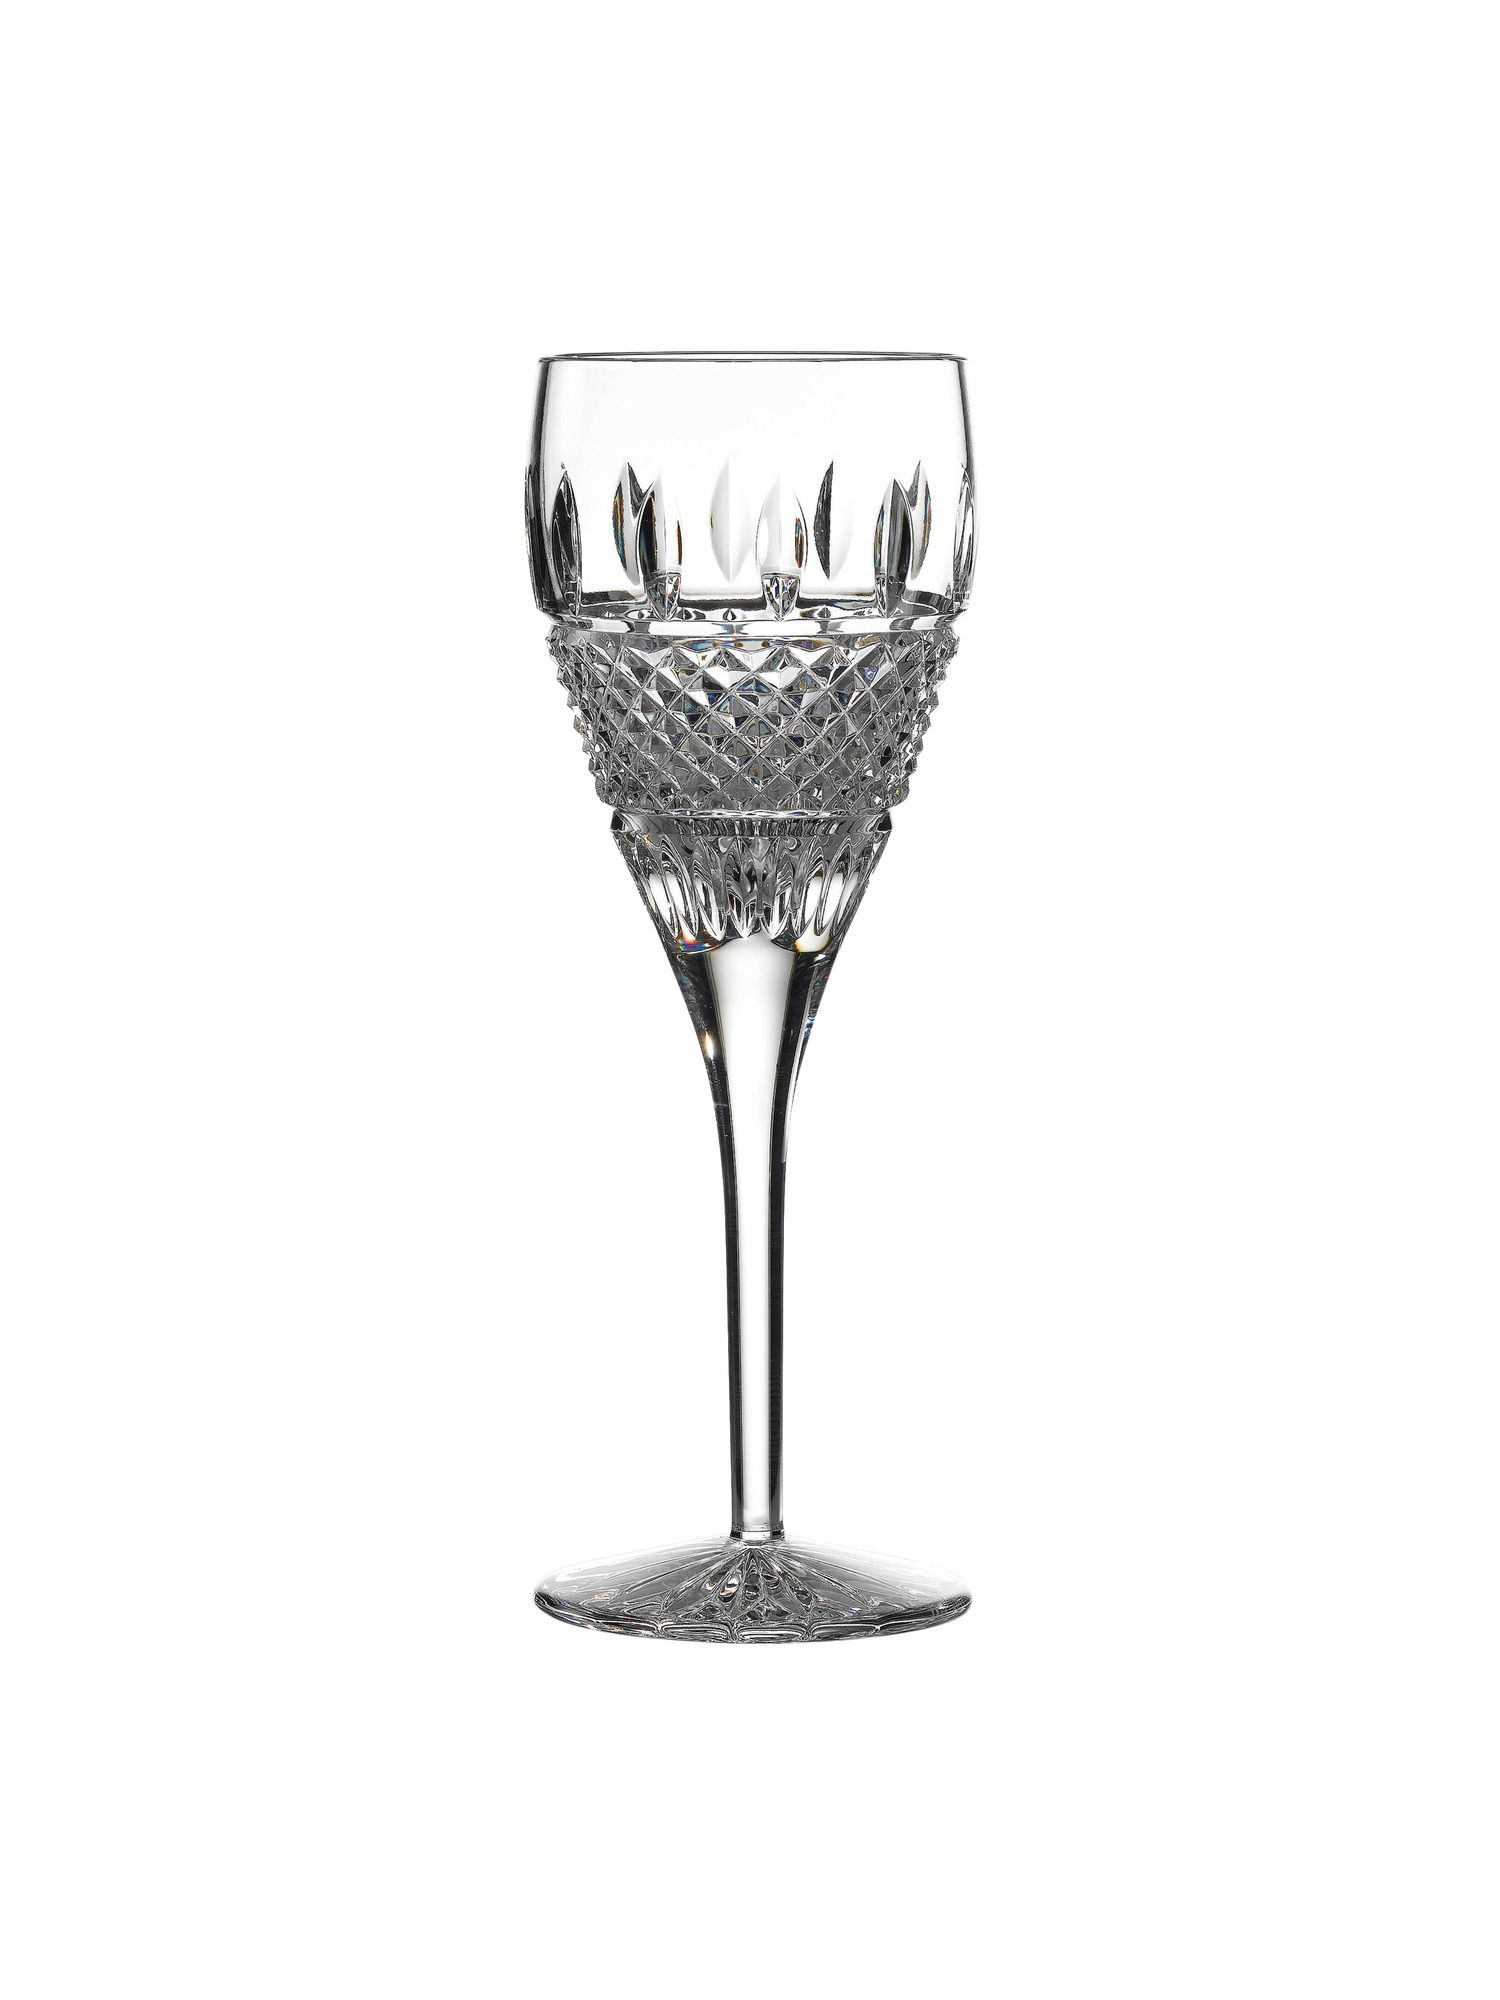 Irish lace glassware